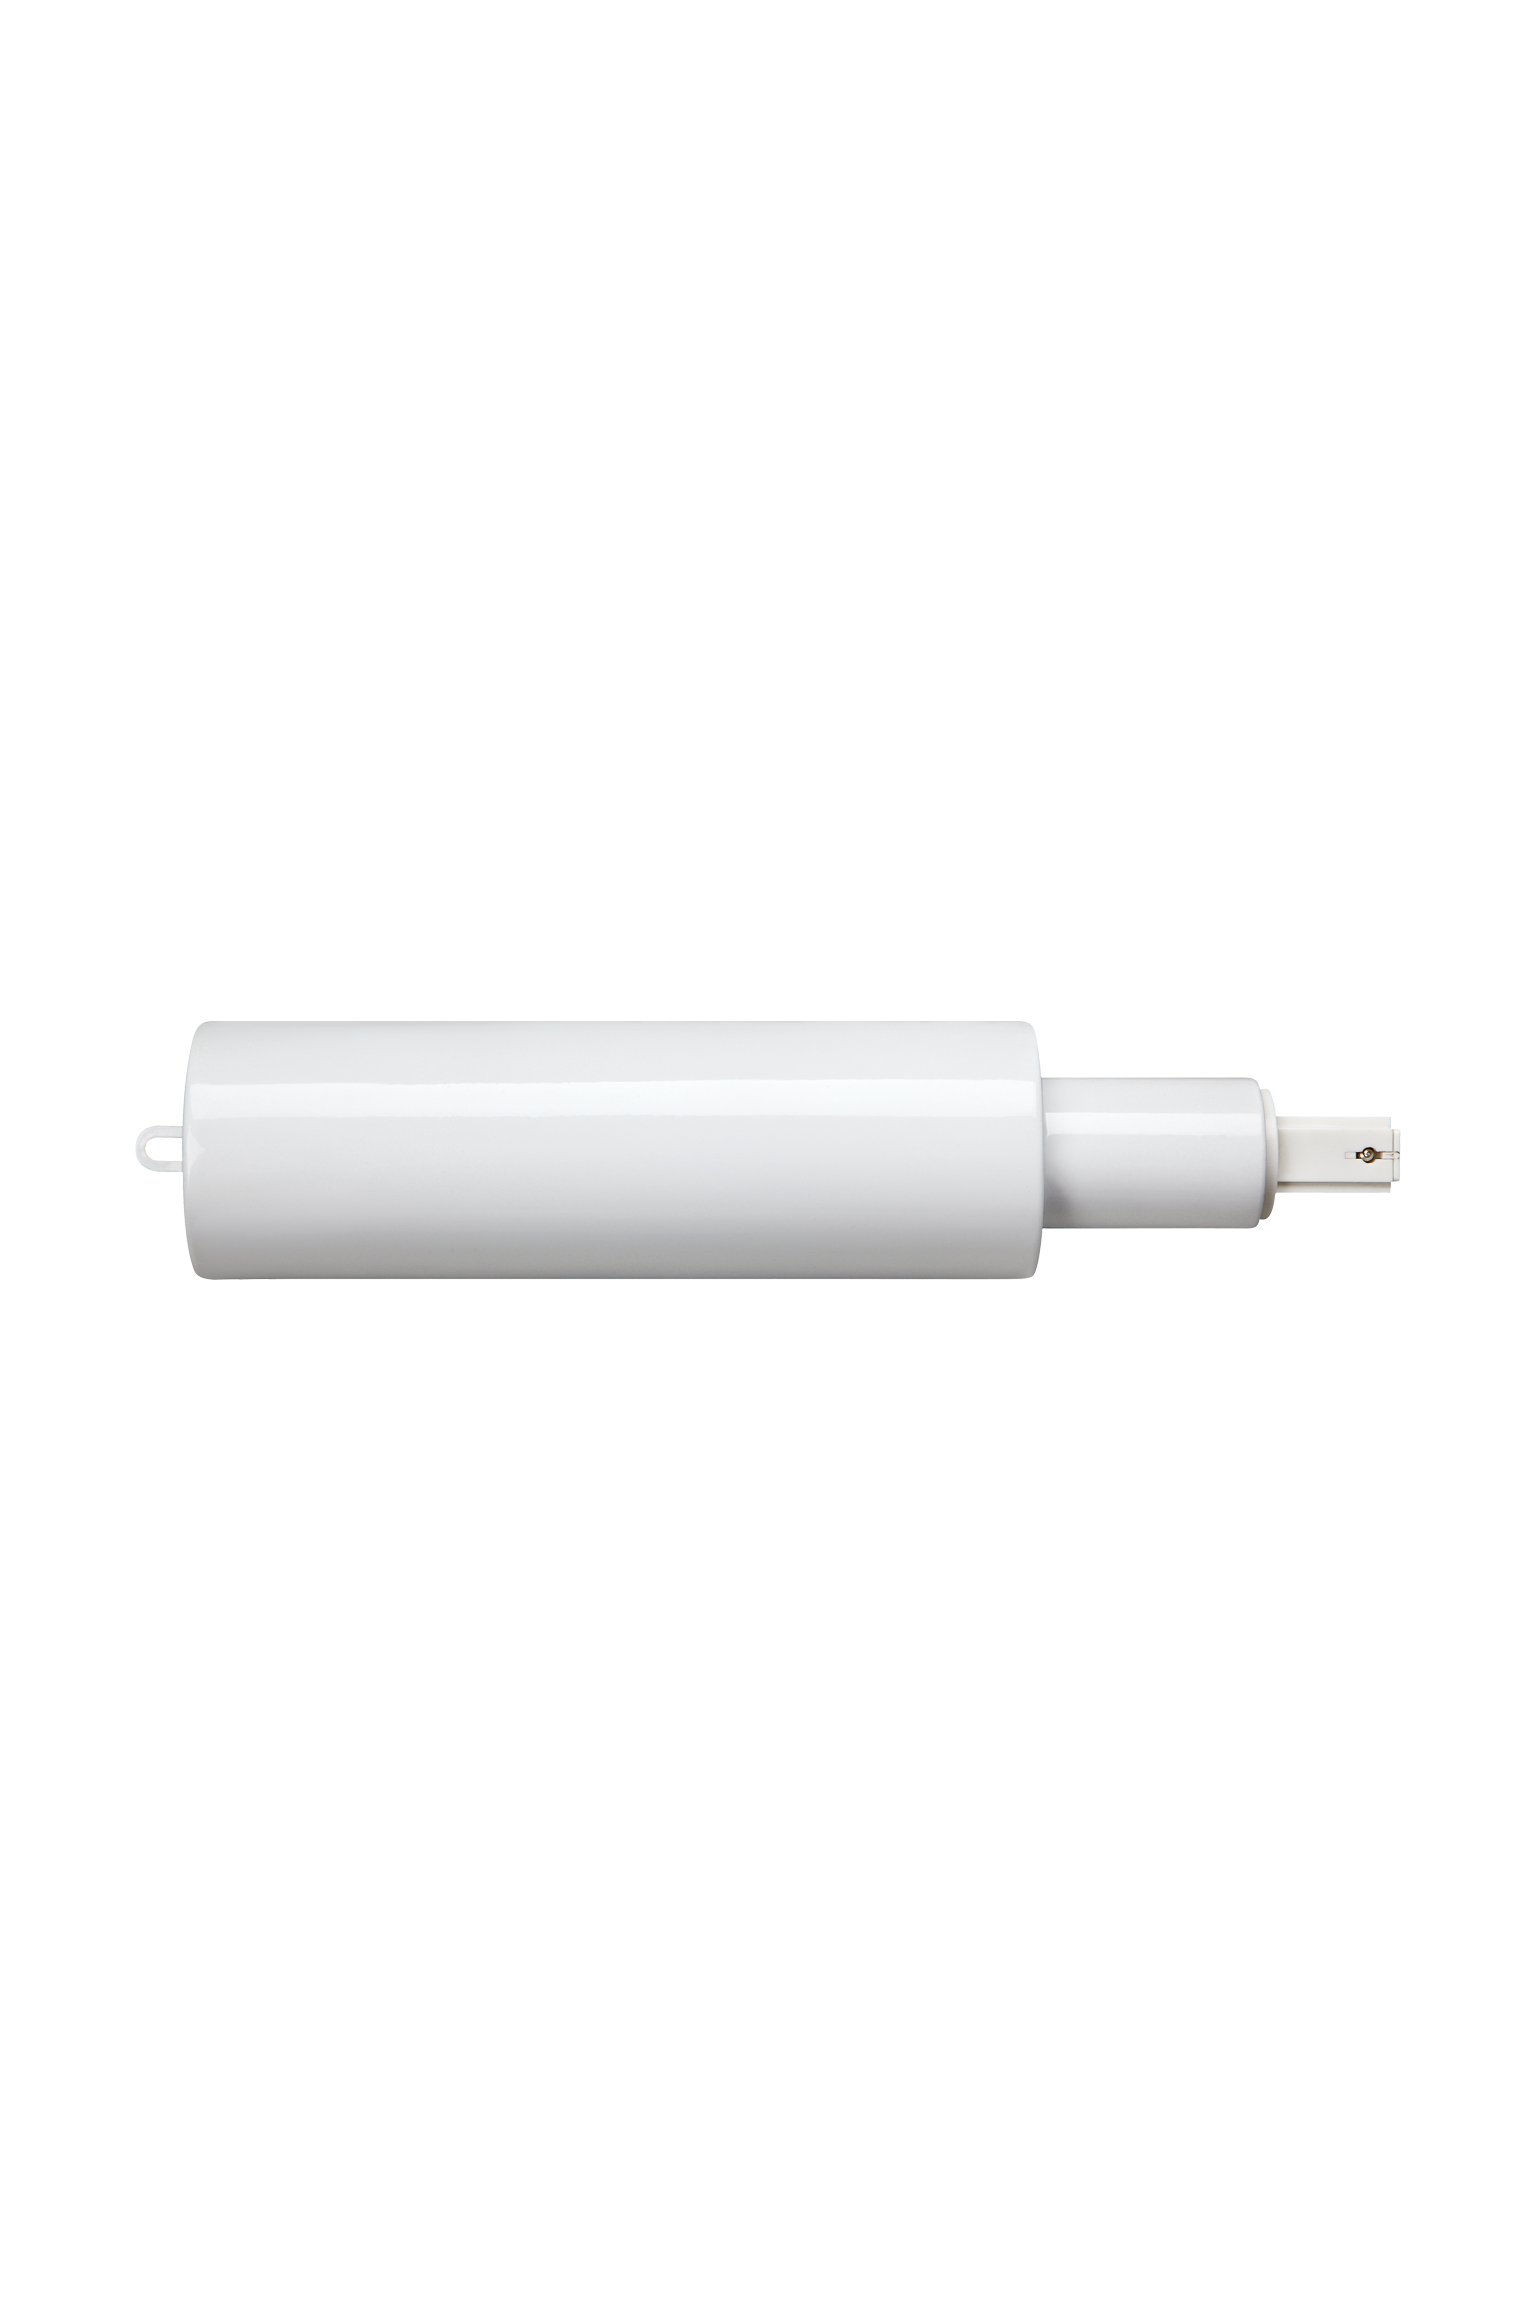 TRACK - Dimmable Driver Large